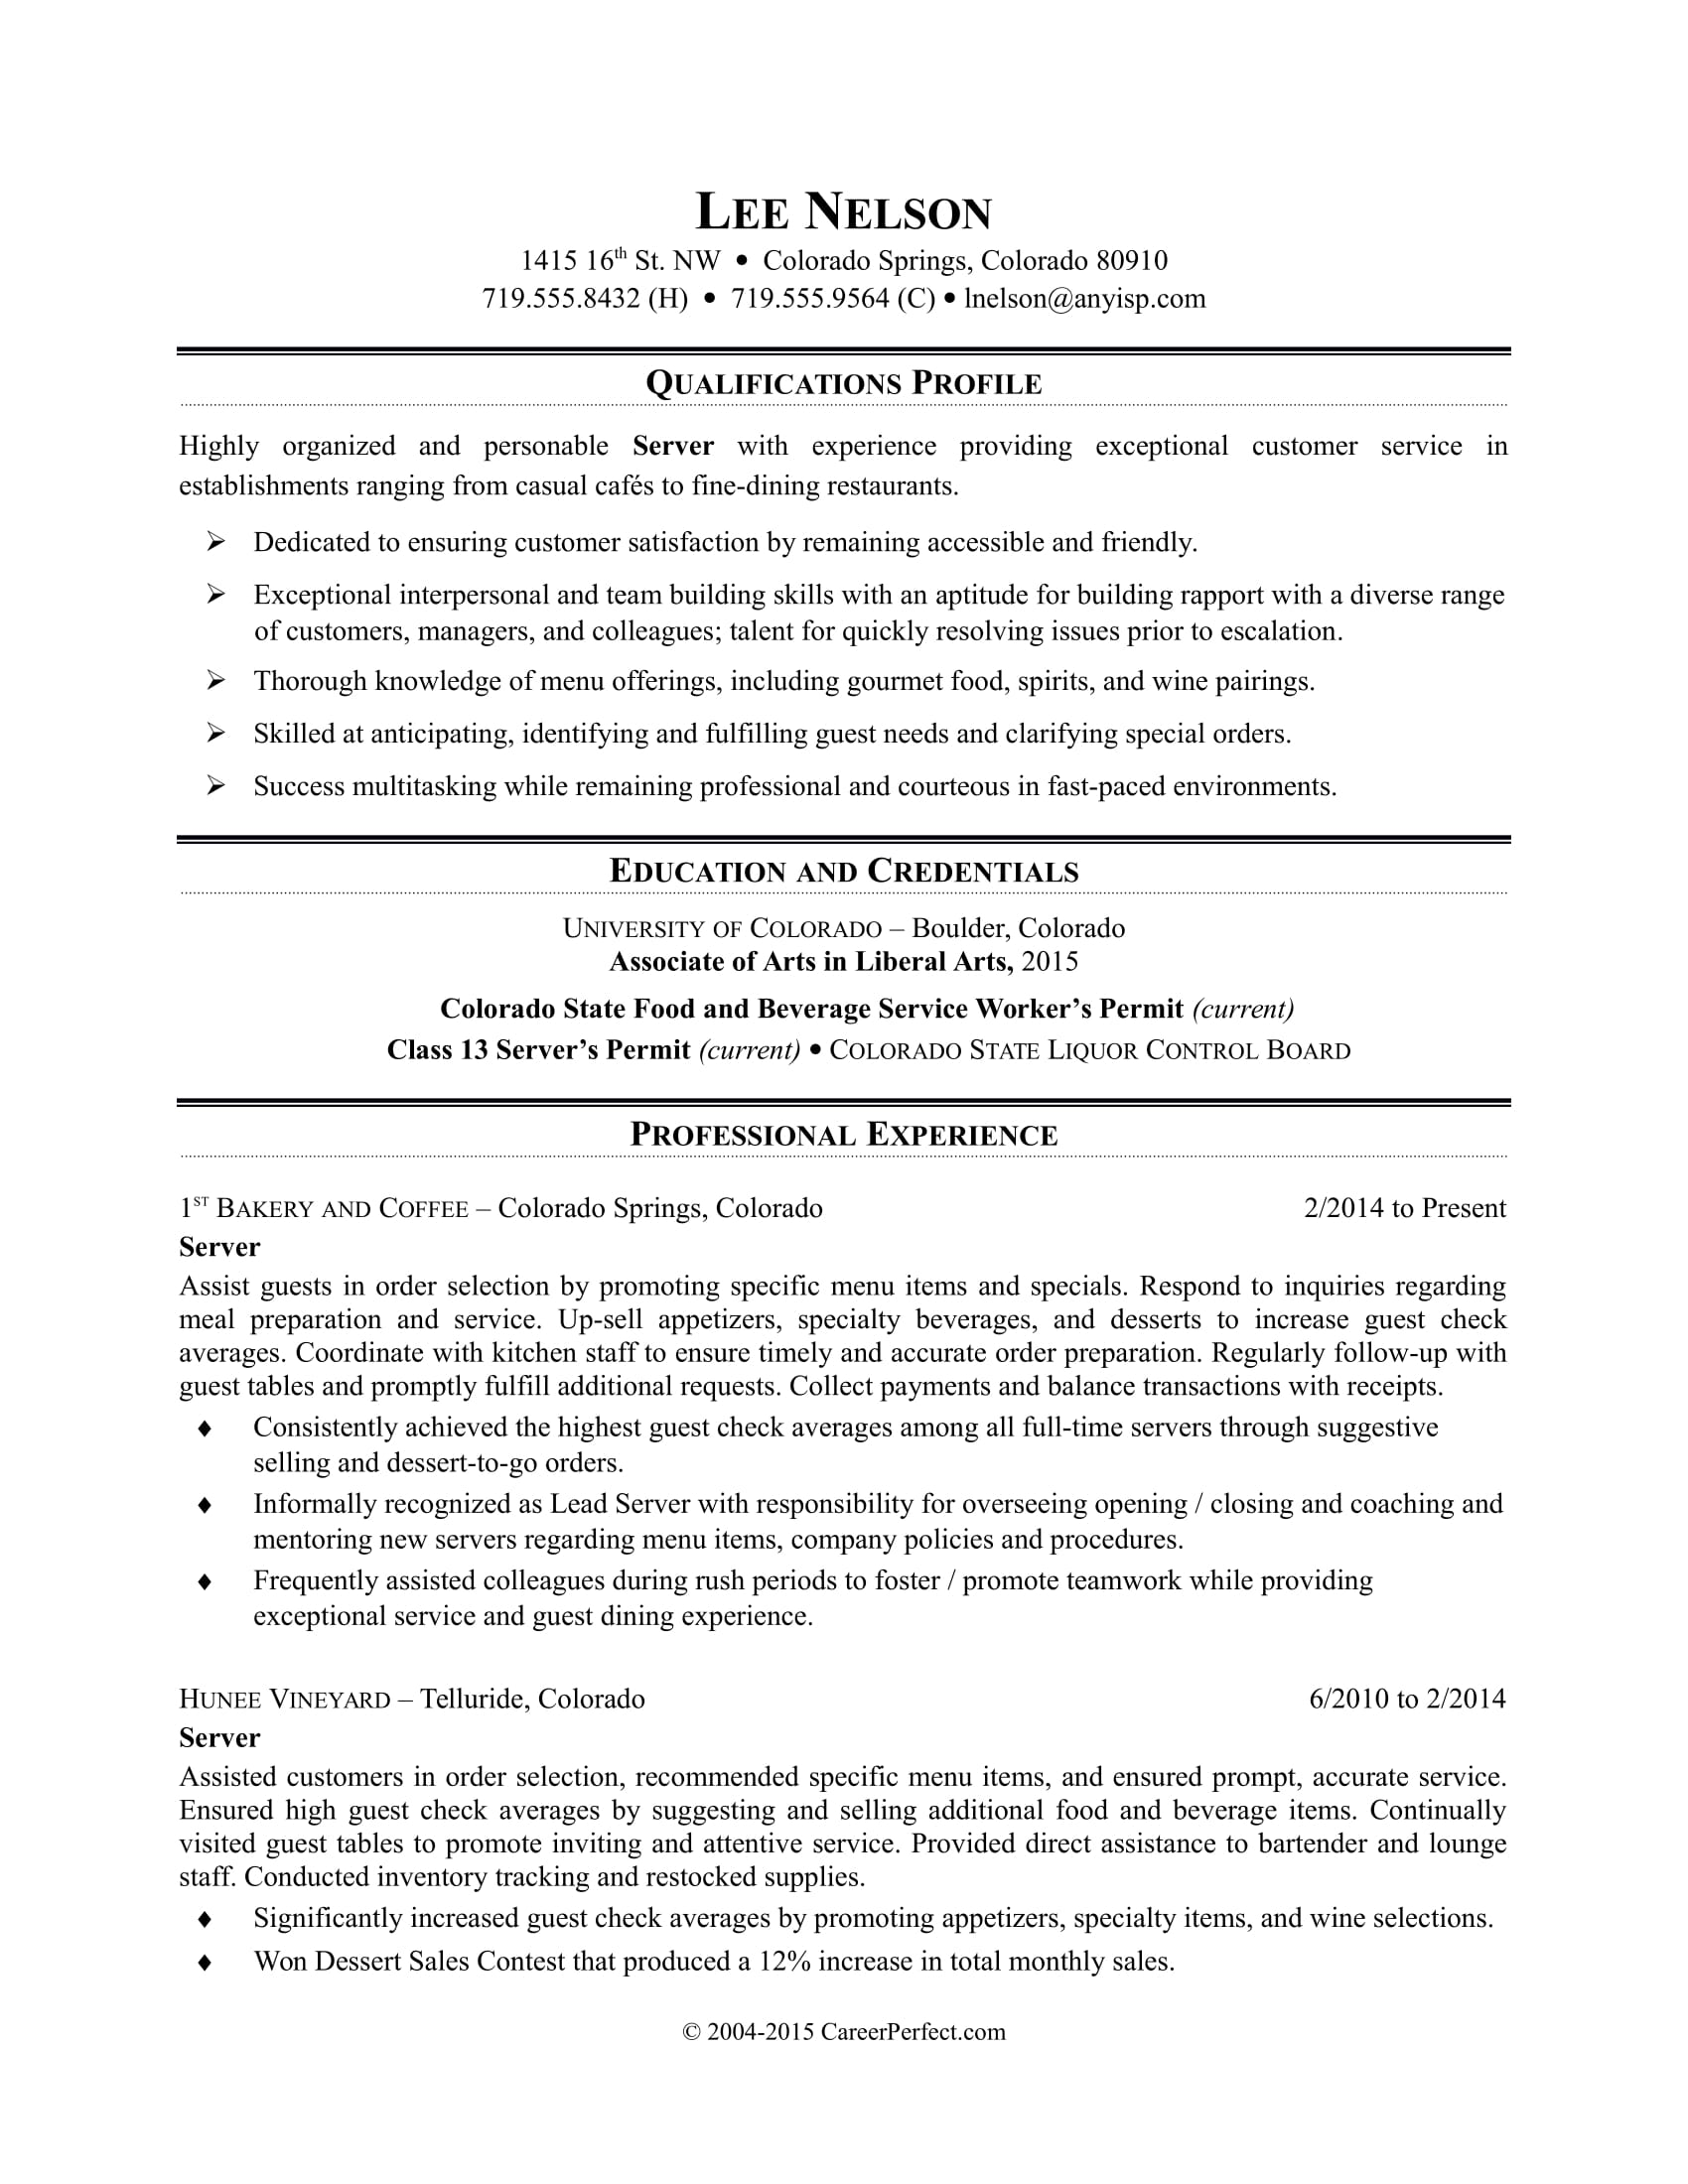 Restaurant Server Resume Sample | Monster.com